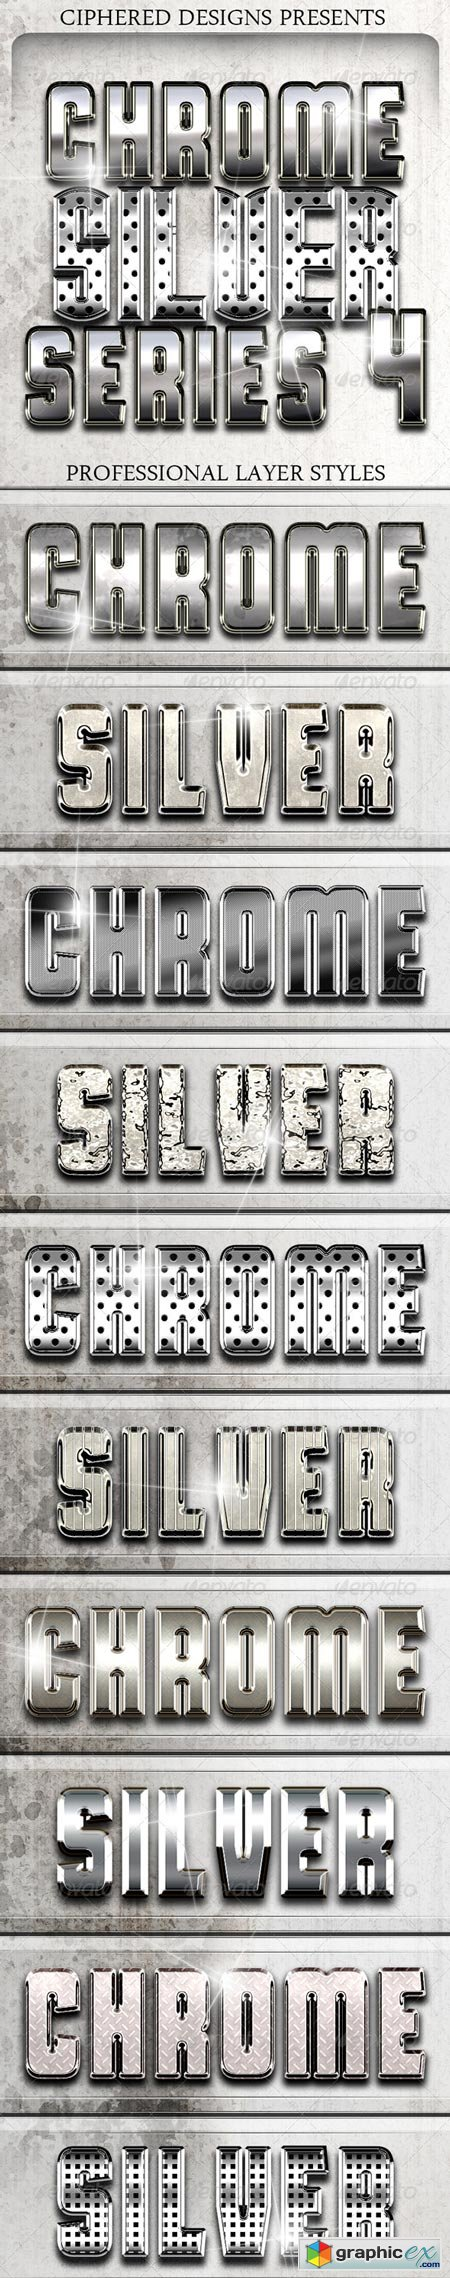 Chrome & Silver Series 4 - Pro Text Effects 8488899